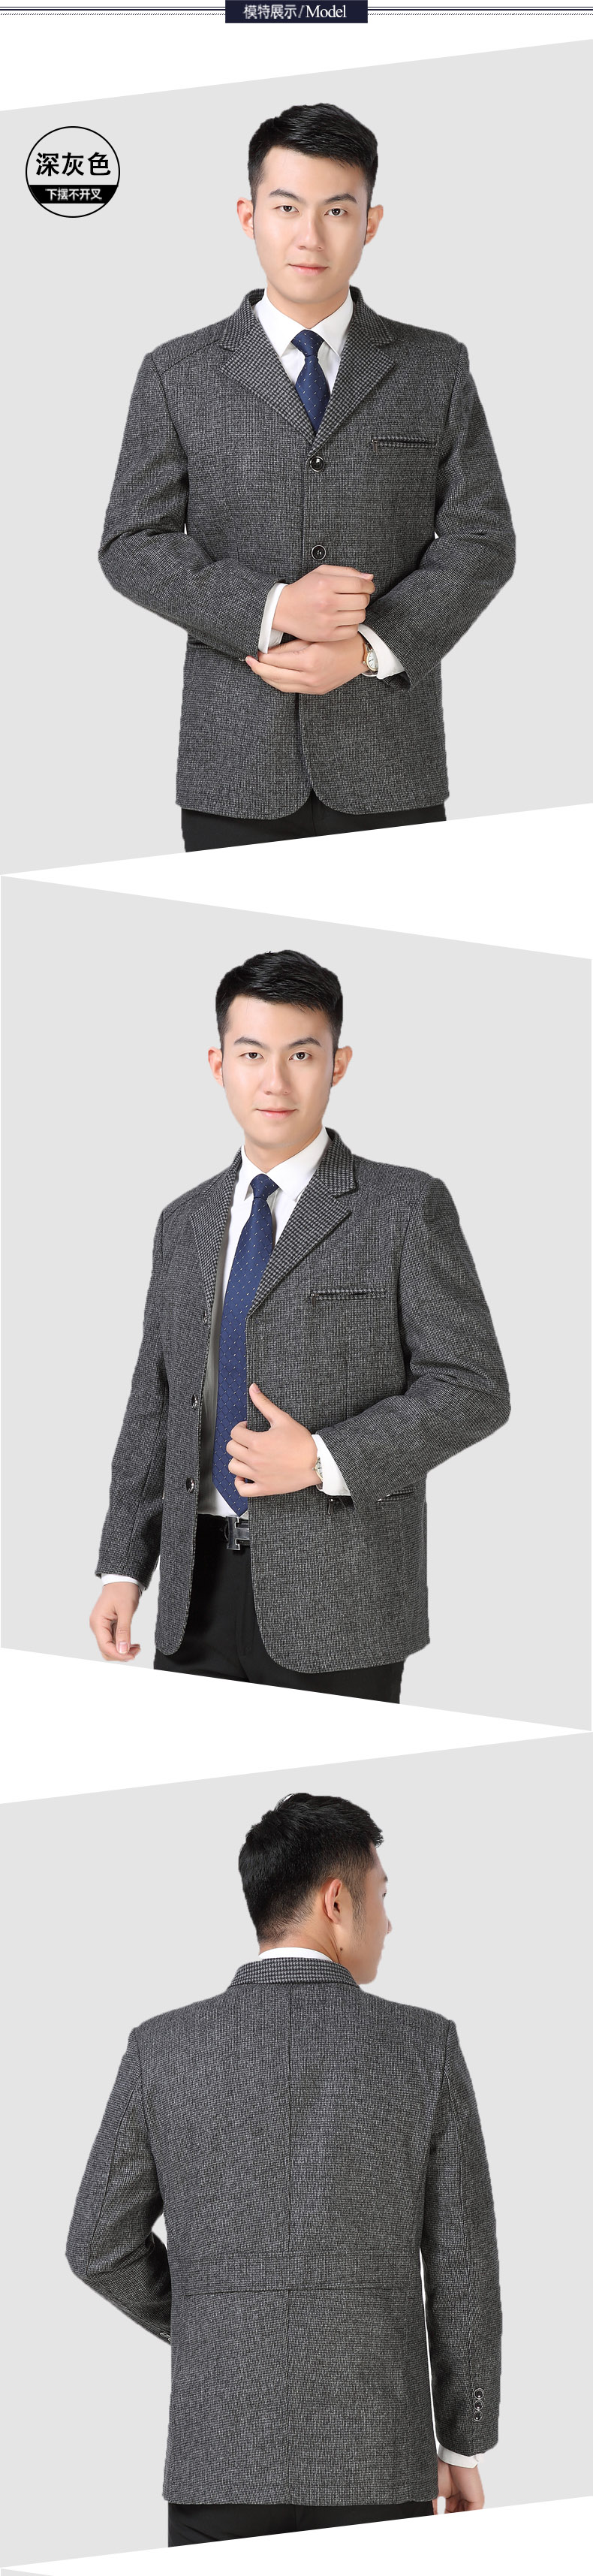 Man Casual Blazers Gray Elegance Jackets Suits Men Leisure Outfits Costume Male Spring Autumn Blazer Homme Jacket Suit Tailored Wear (4)